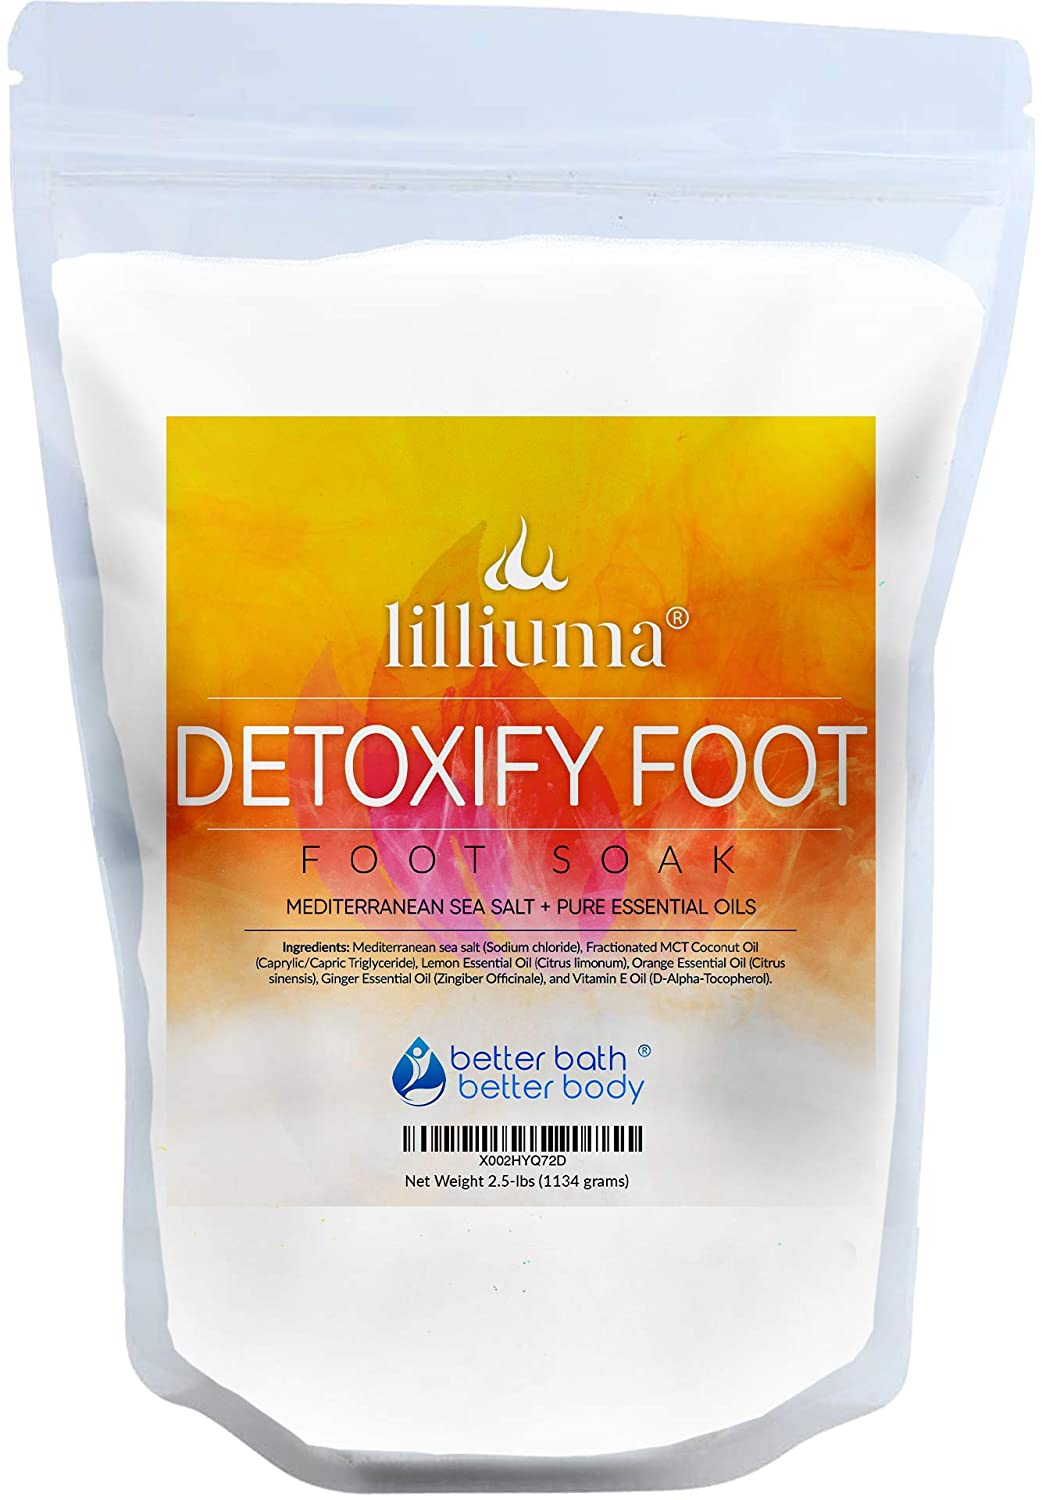 New Detoxify Foot Soak 40 Ounces Mediterranean Sea Salt with Lemon, Orange, and Ginger Essential Oils, Natural Detox Foot Soak